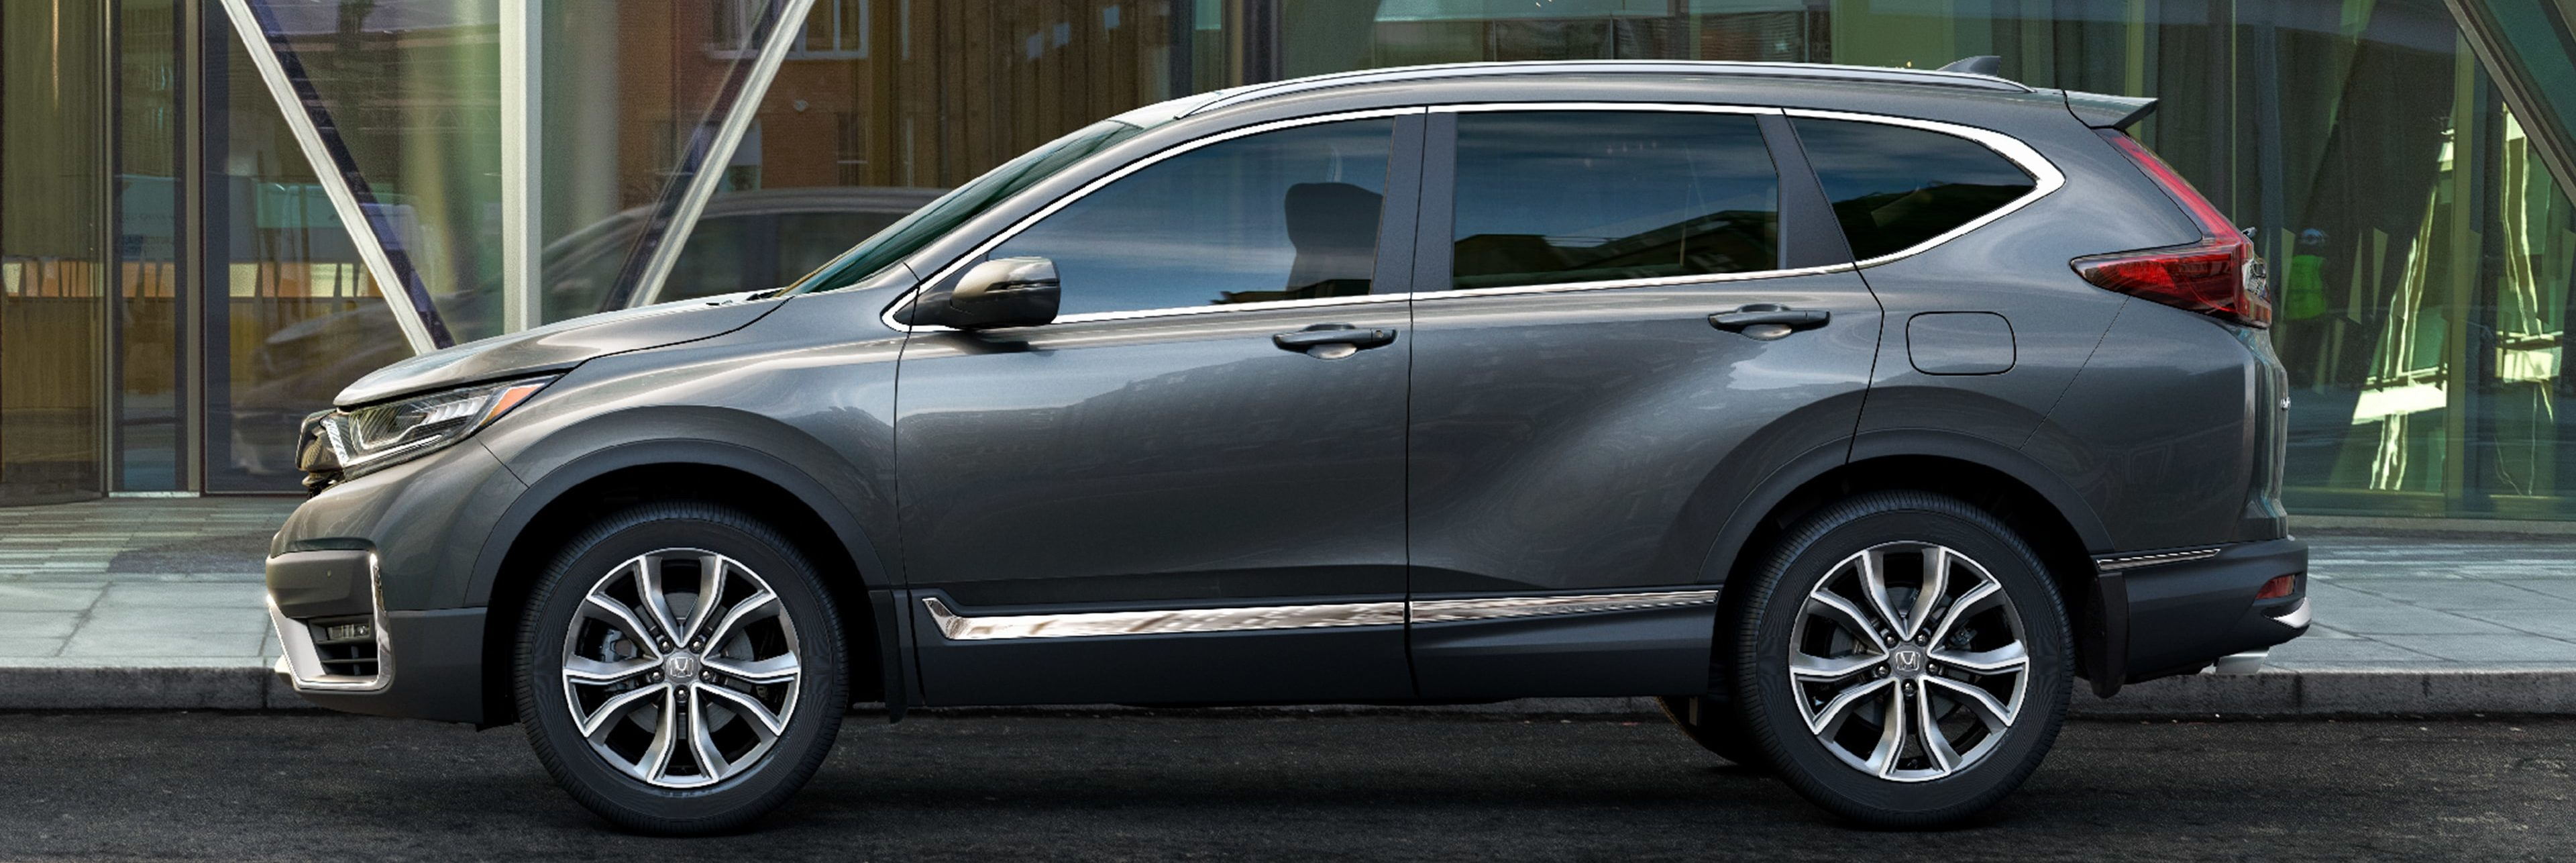 Side profile of 2020 Honda CR-V